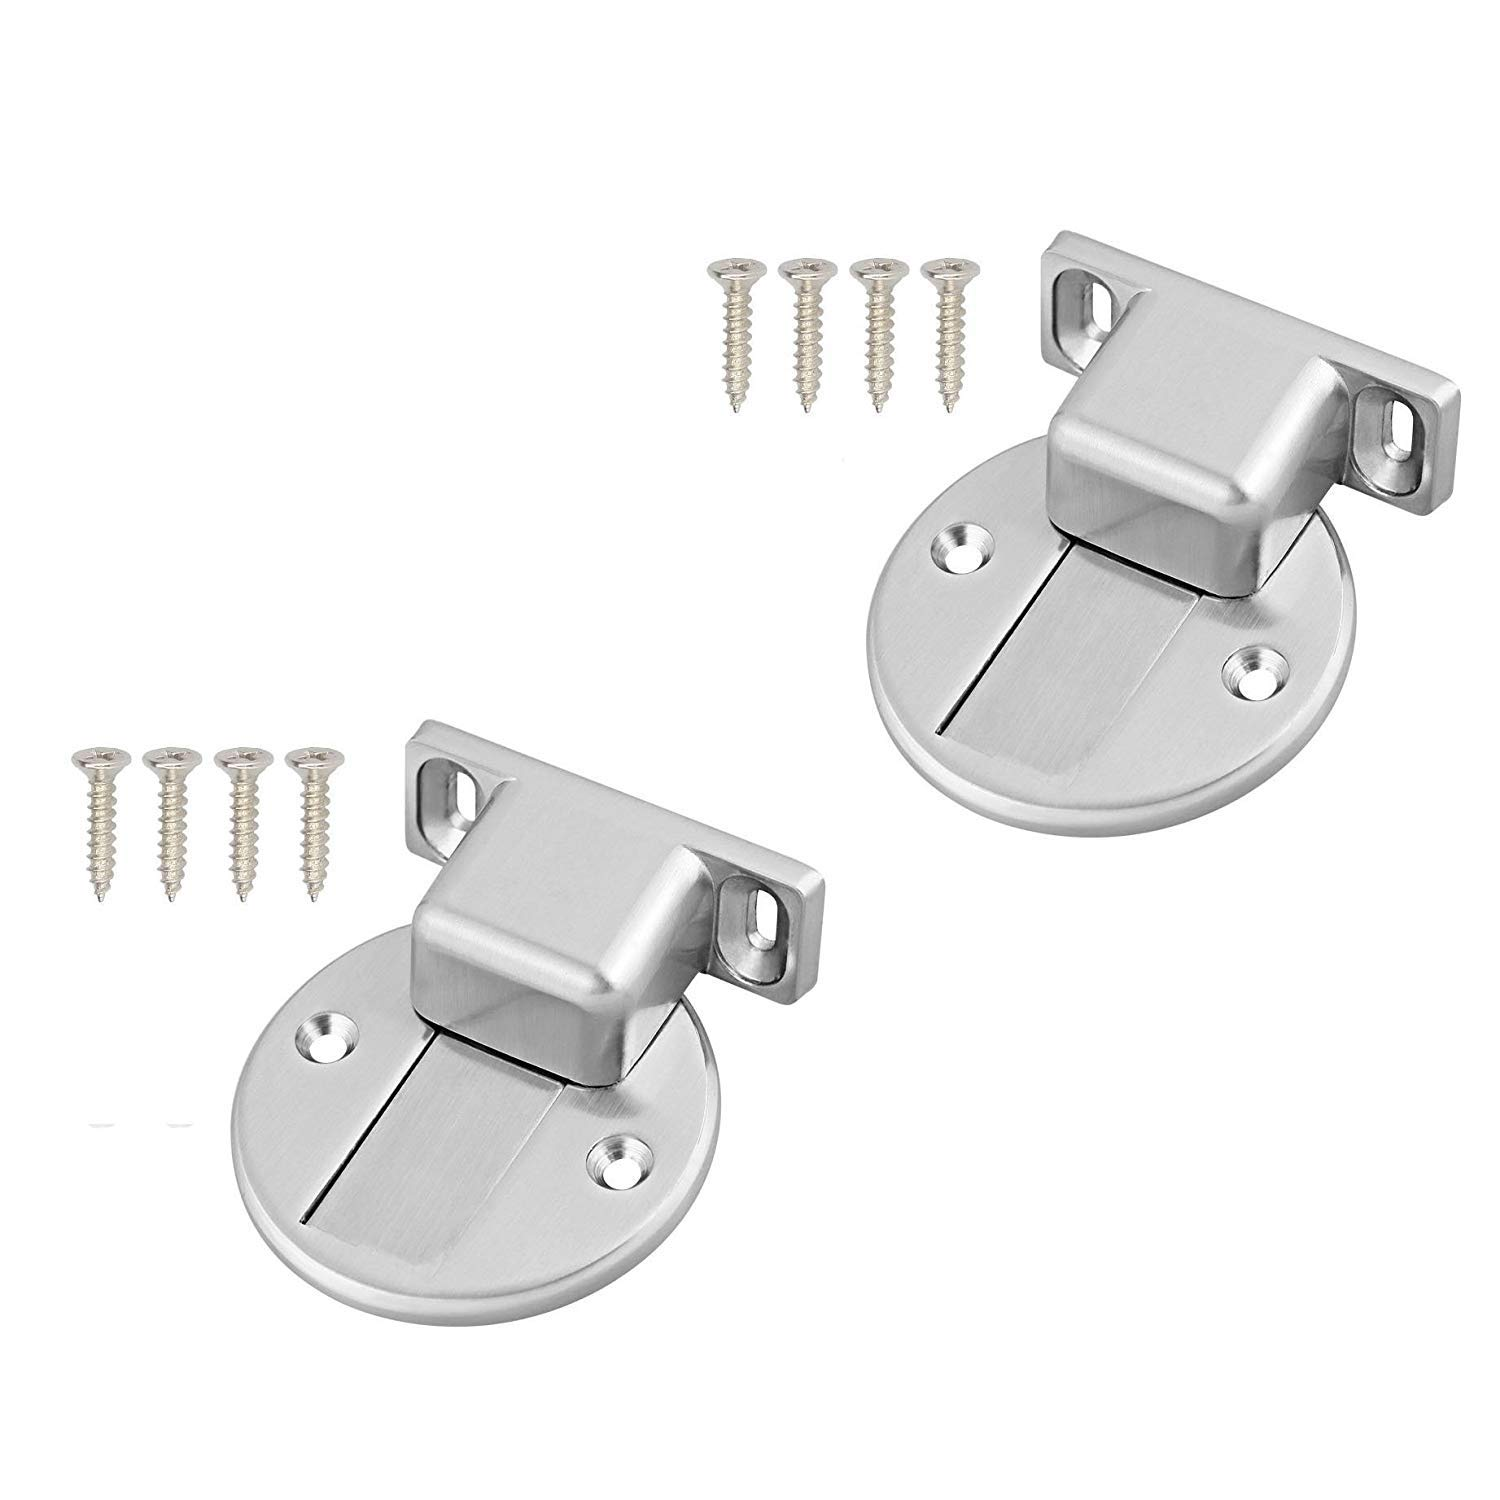 Rannb 2 Pack Stainless Steel Magnetic Door Stopper Holder Heavy Duty Home Stop Catch with Mounting Screws